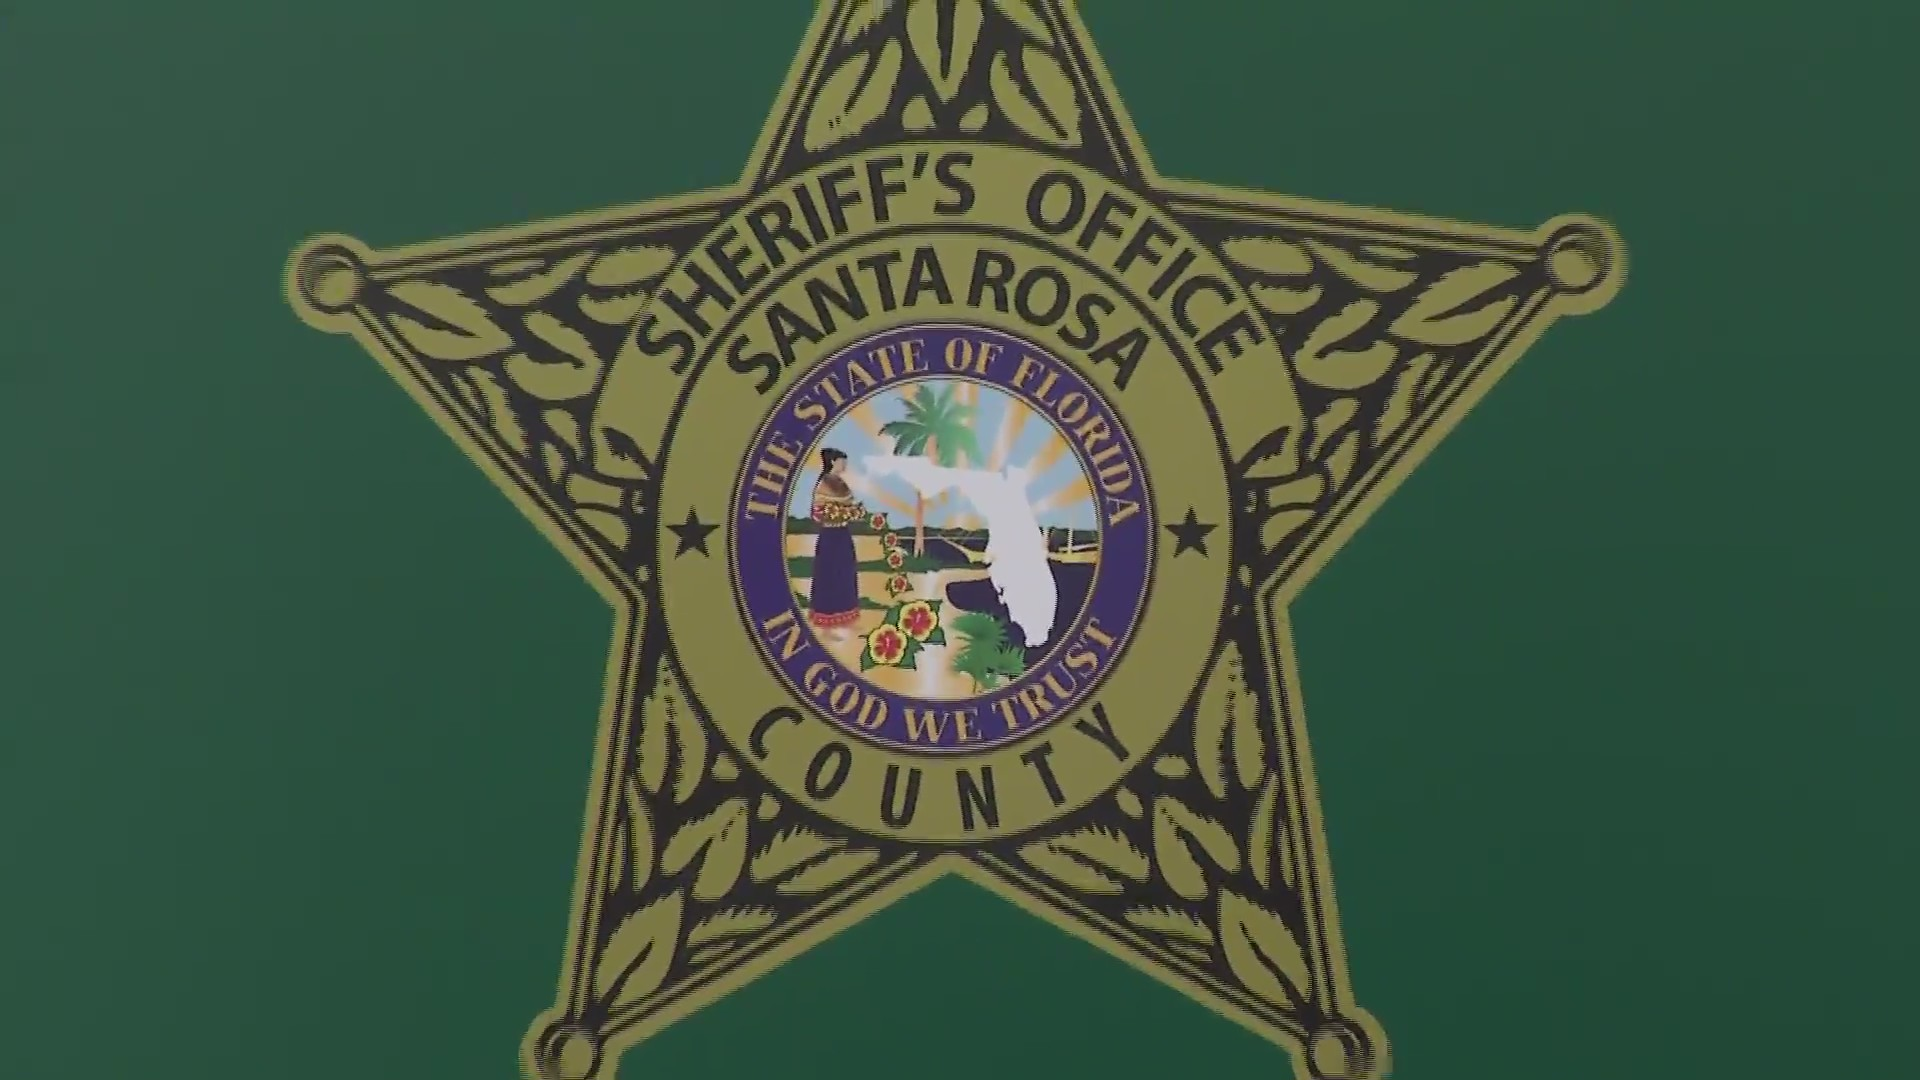 santa rosa county sheriff office_1545155645948.jpg_65382851_ver1.0_1552680081428.jpg.jpg